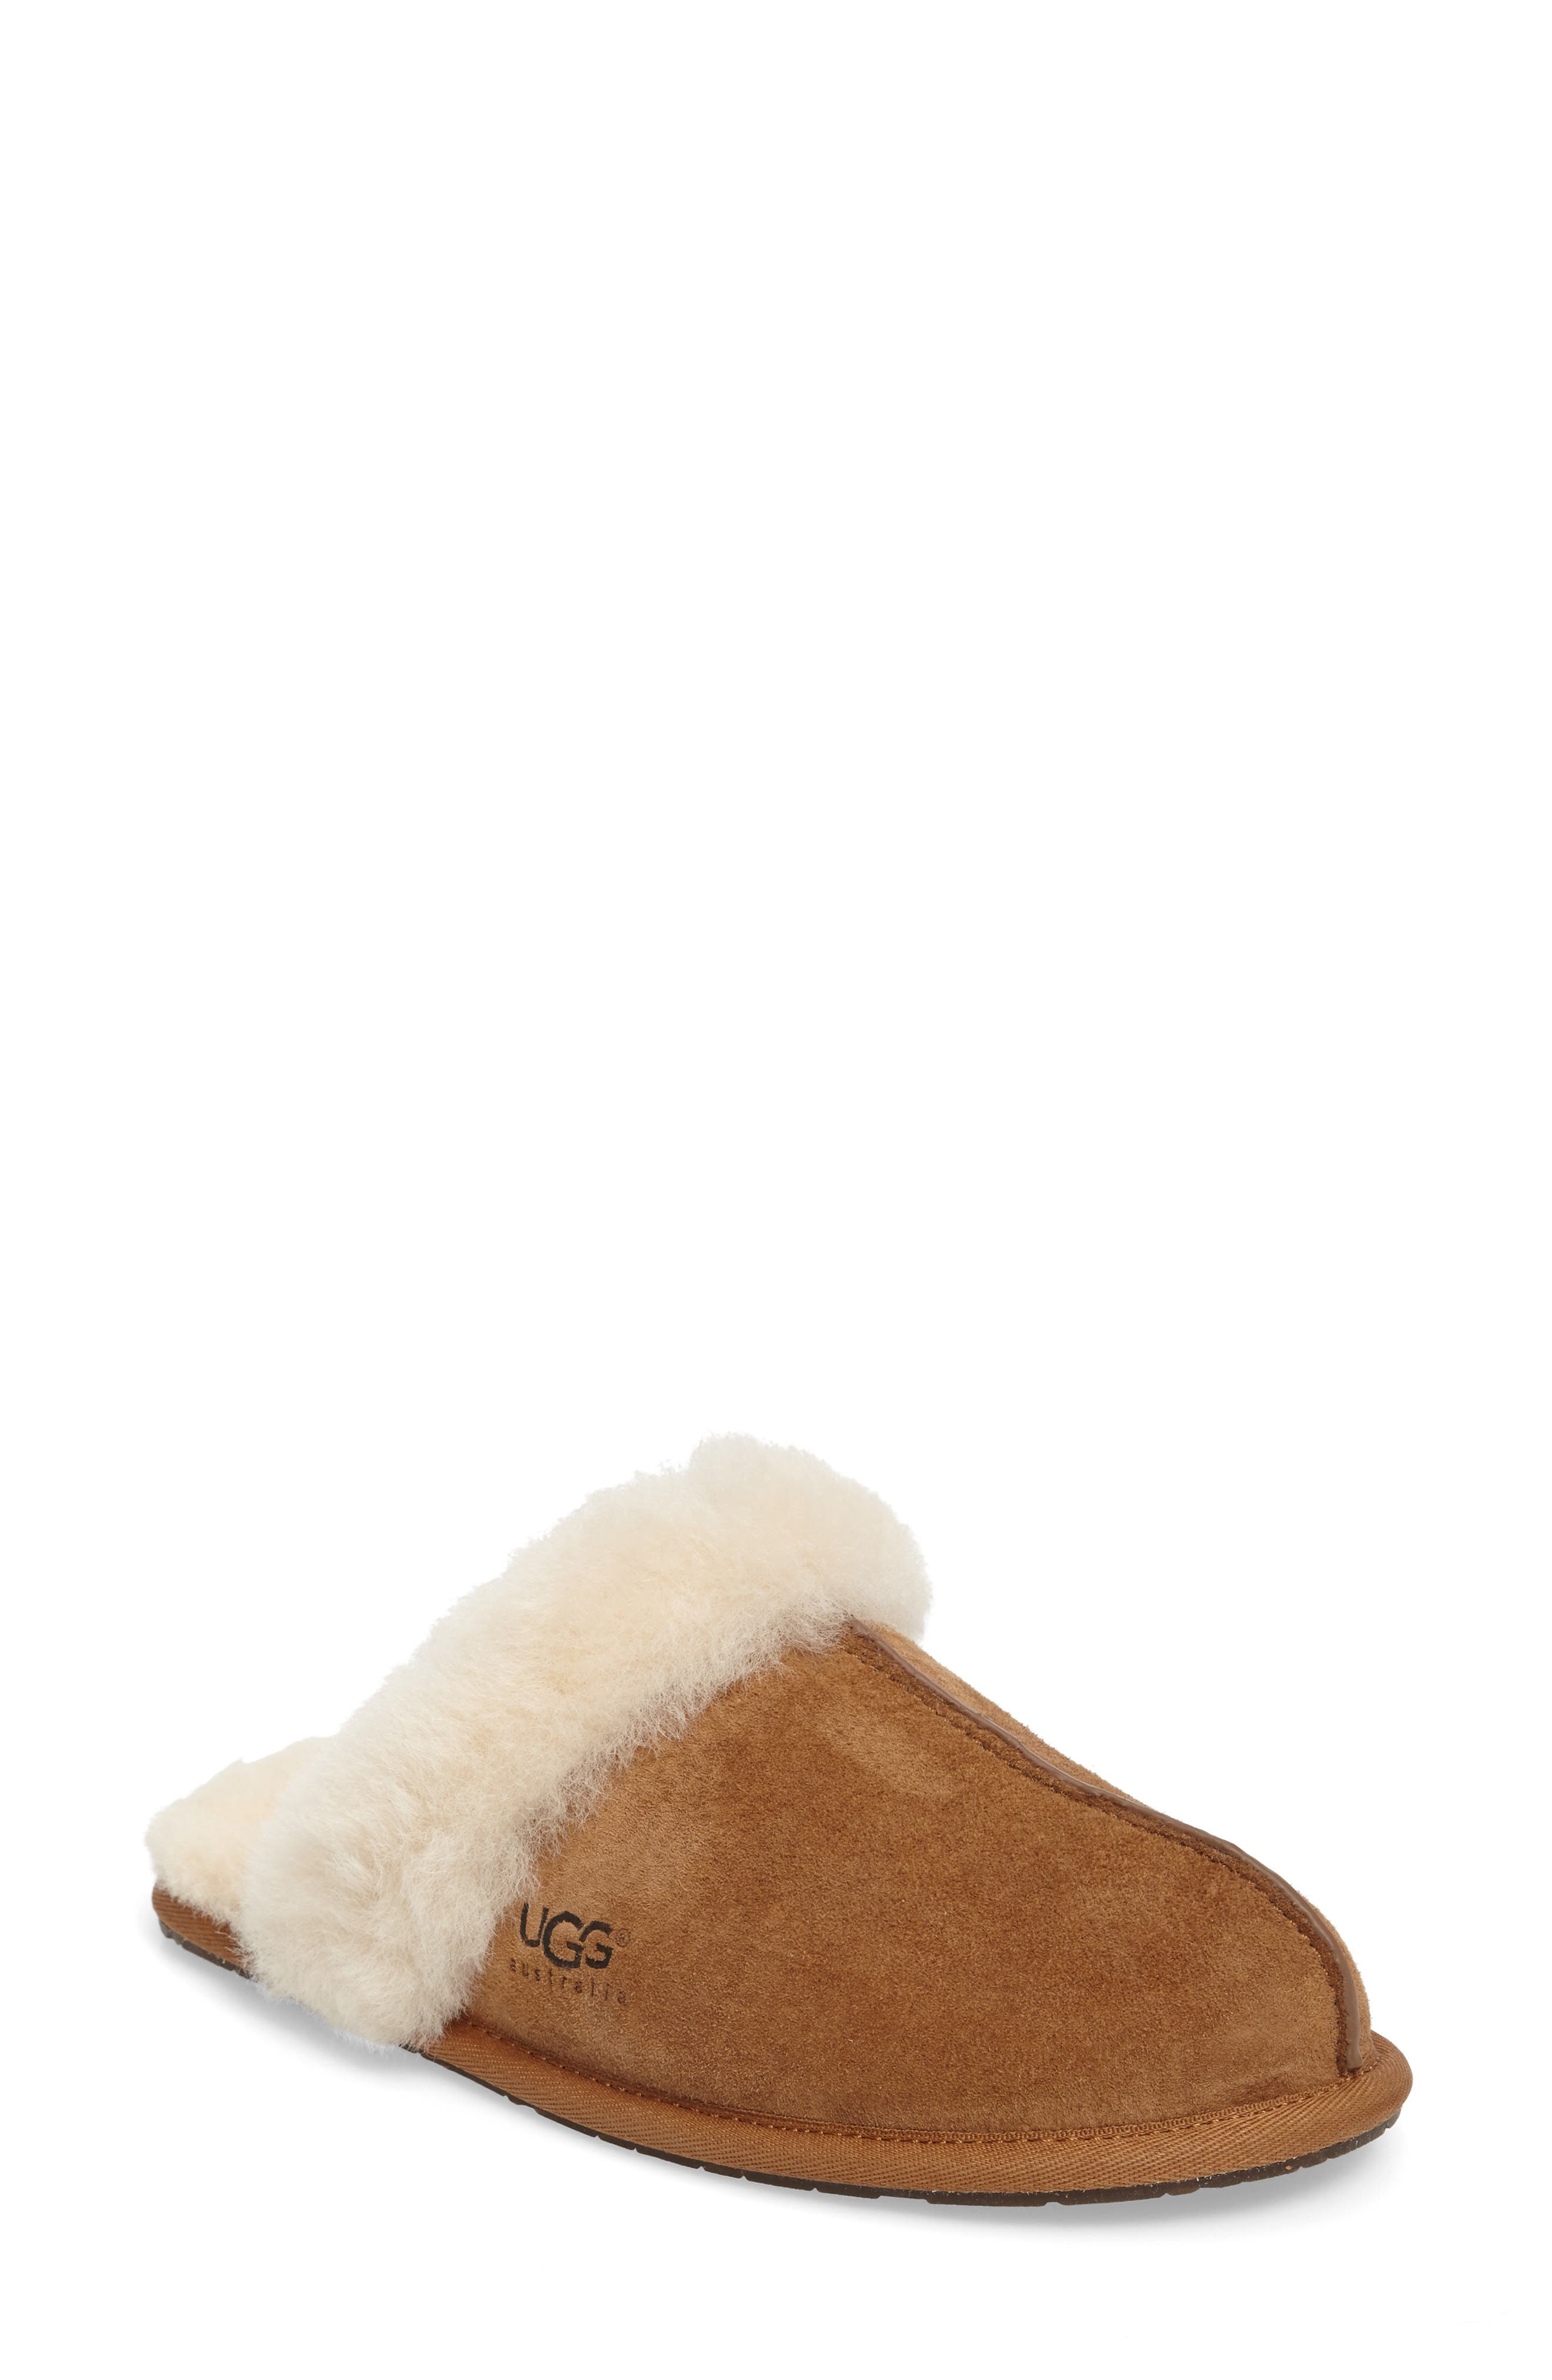 UGG<SUP>®</SUP> Scuffette II Water Resistant Slipper, Main, color, 219